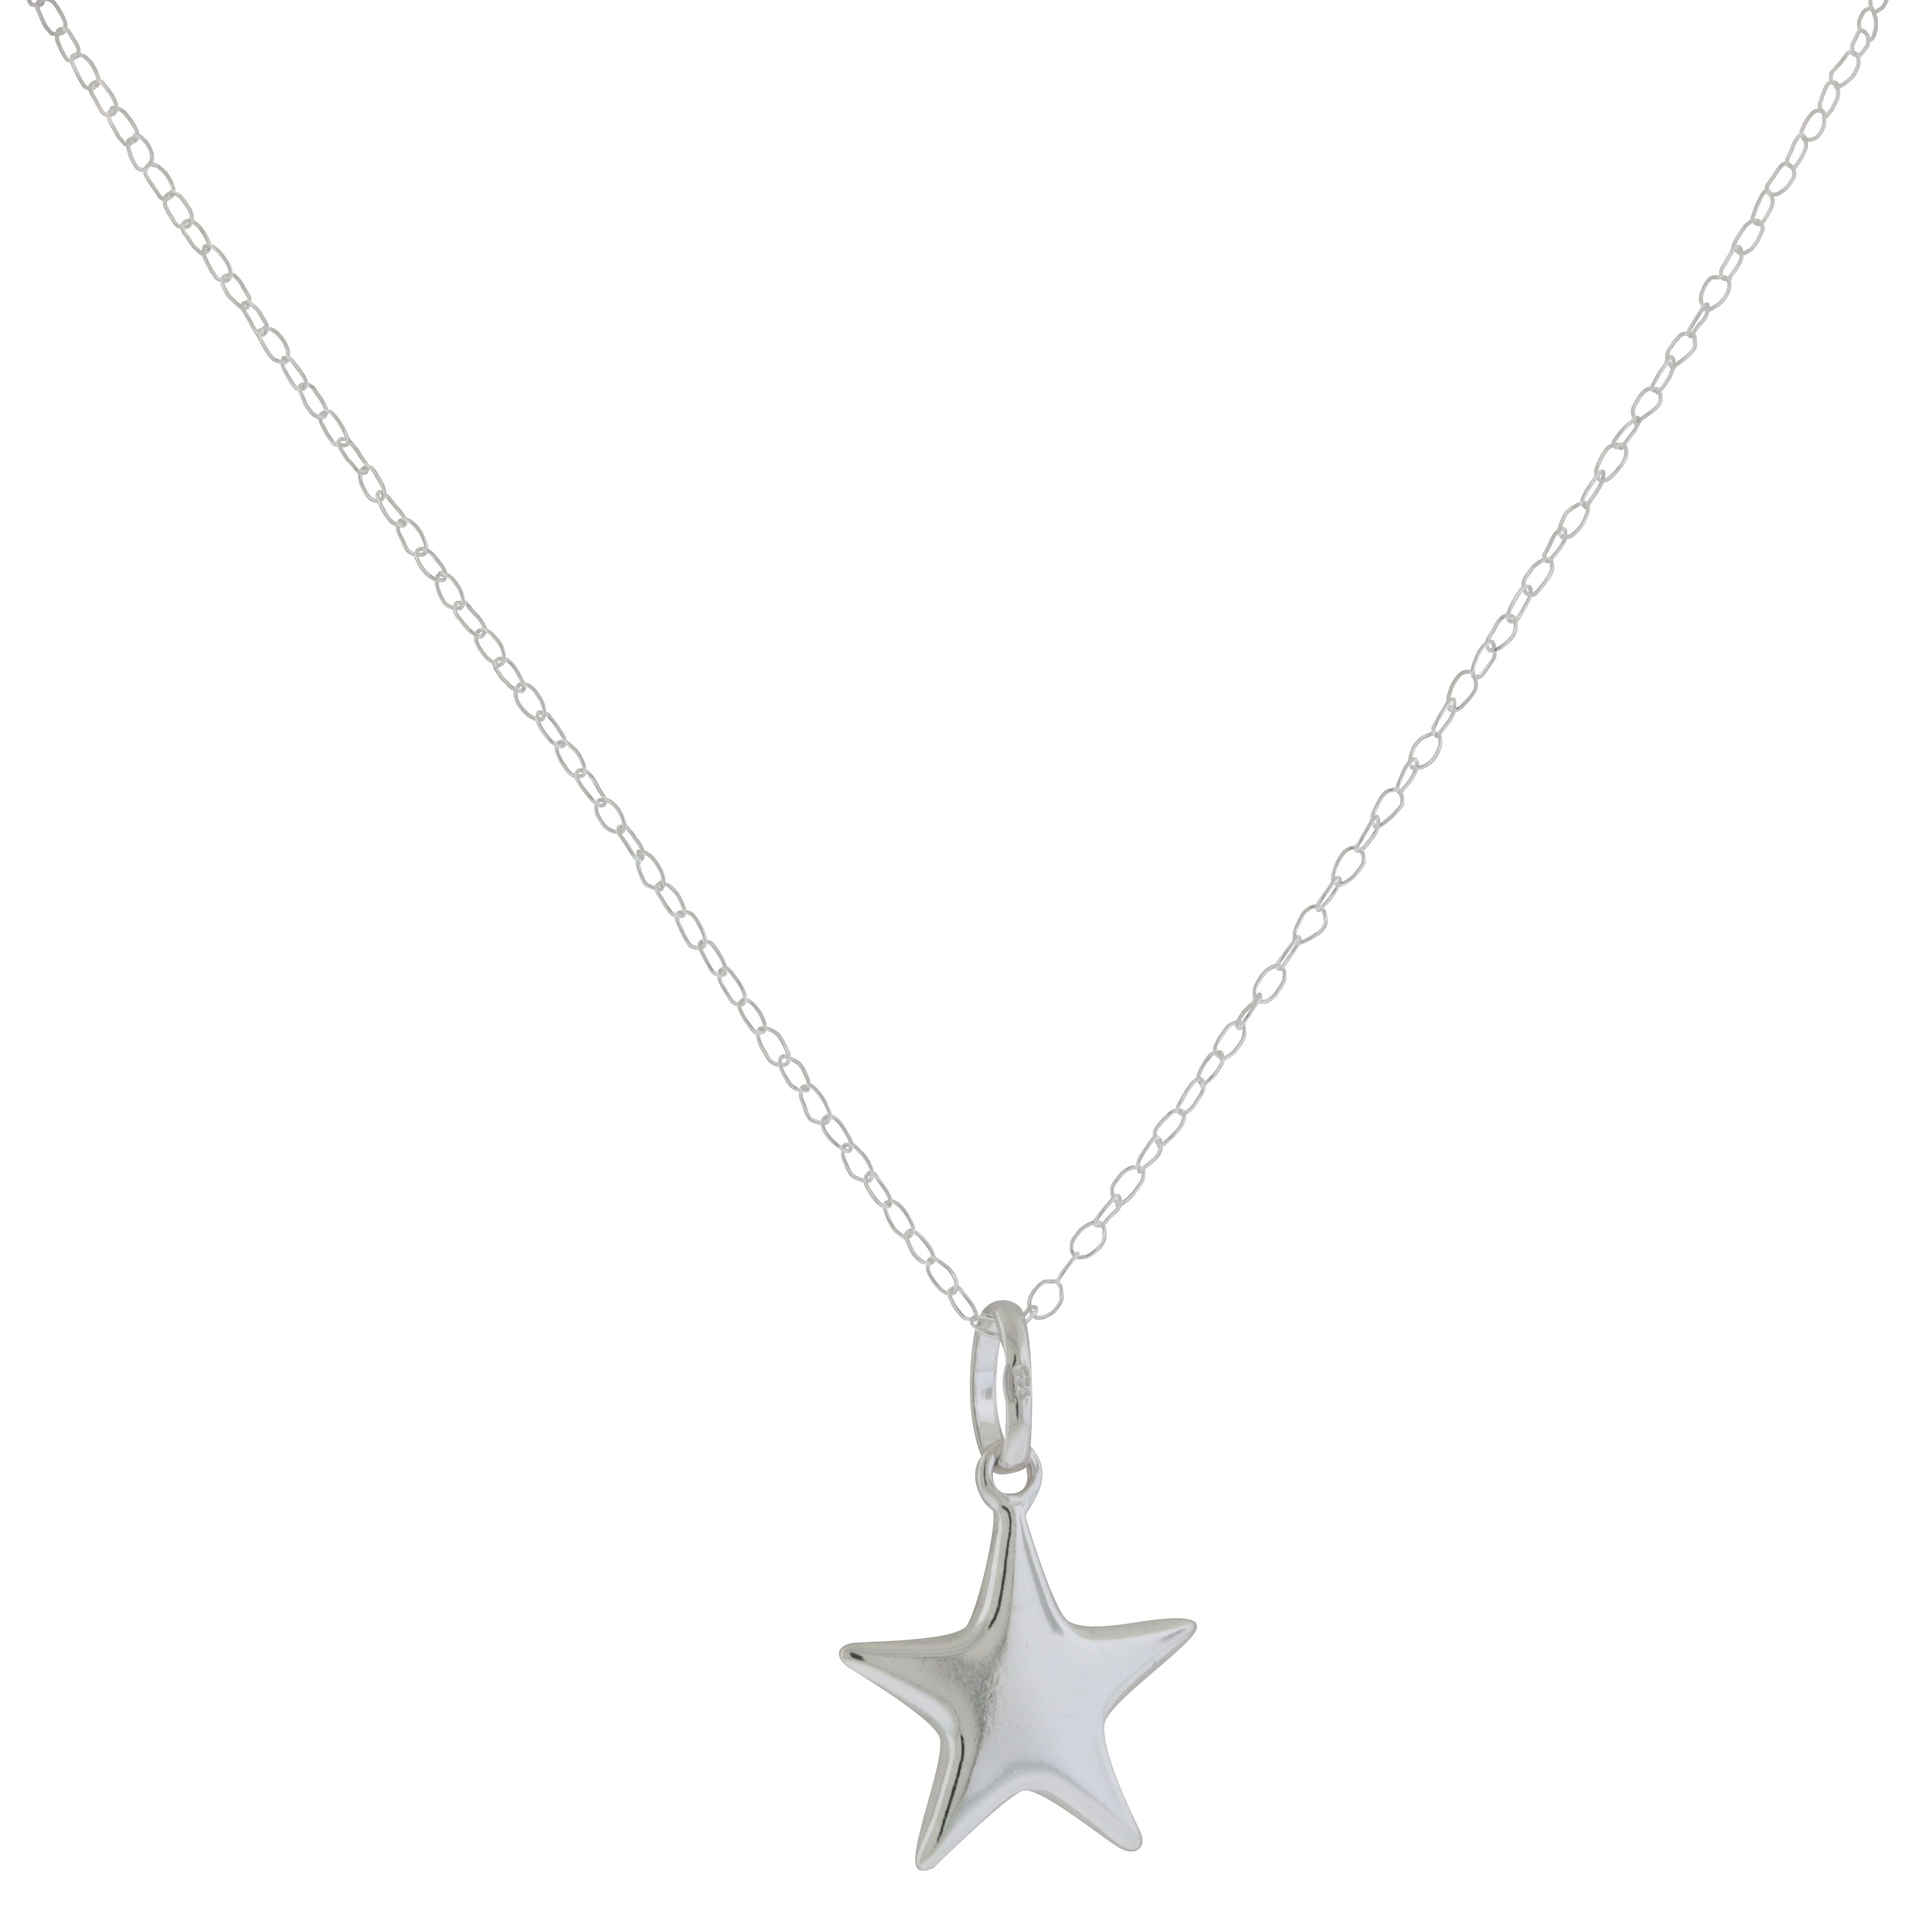 Sterling Silver Pendant with Chain - JP1804